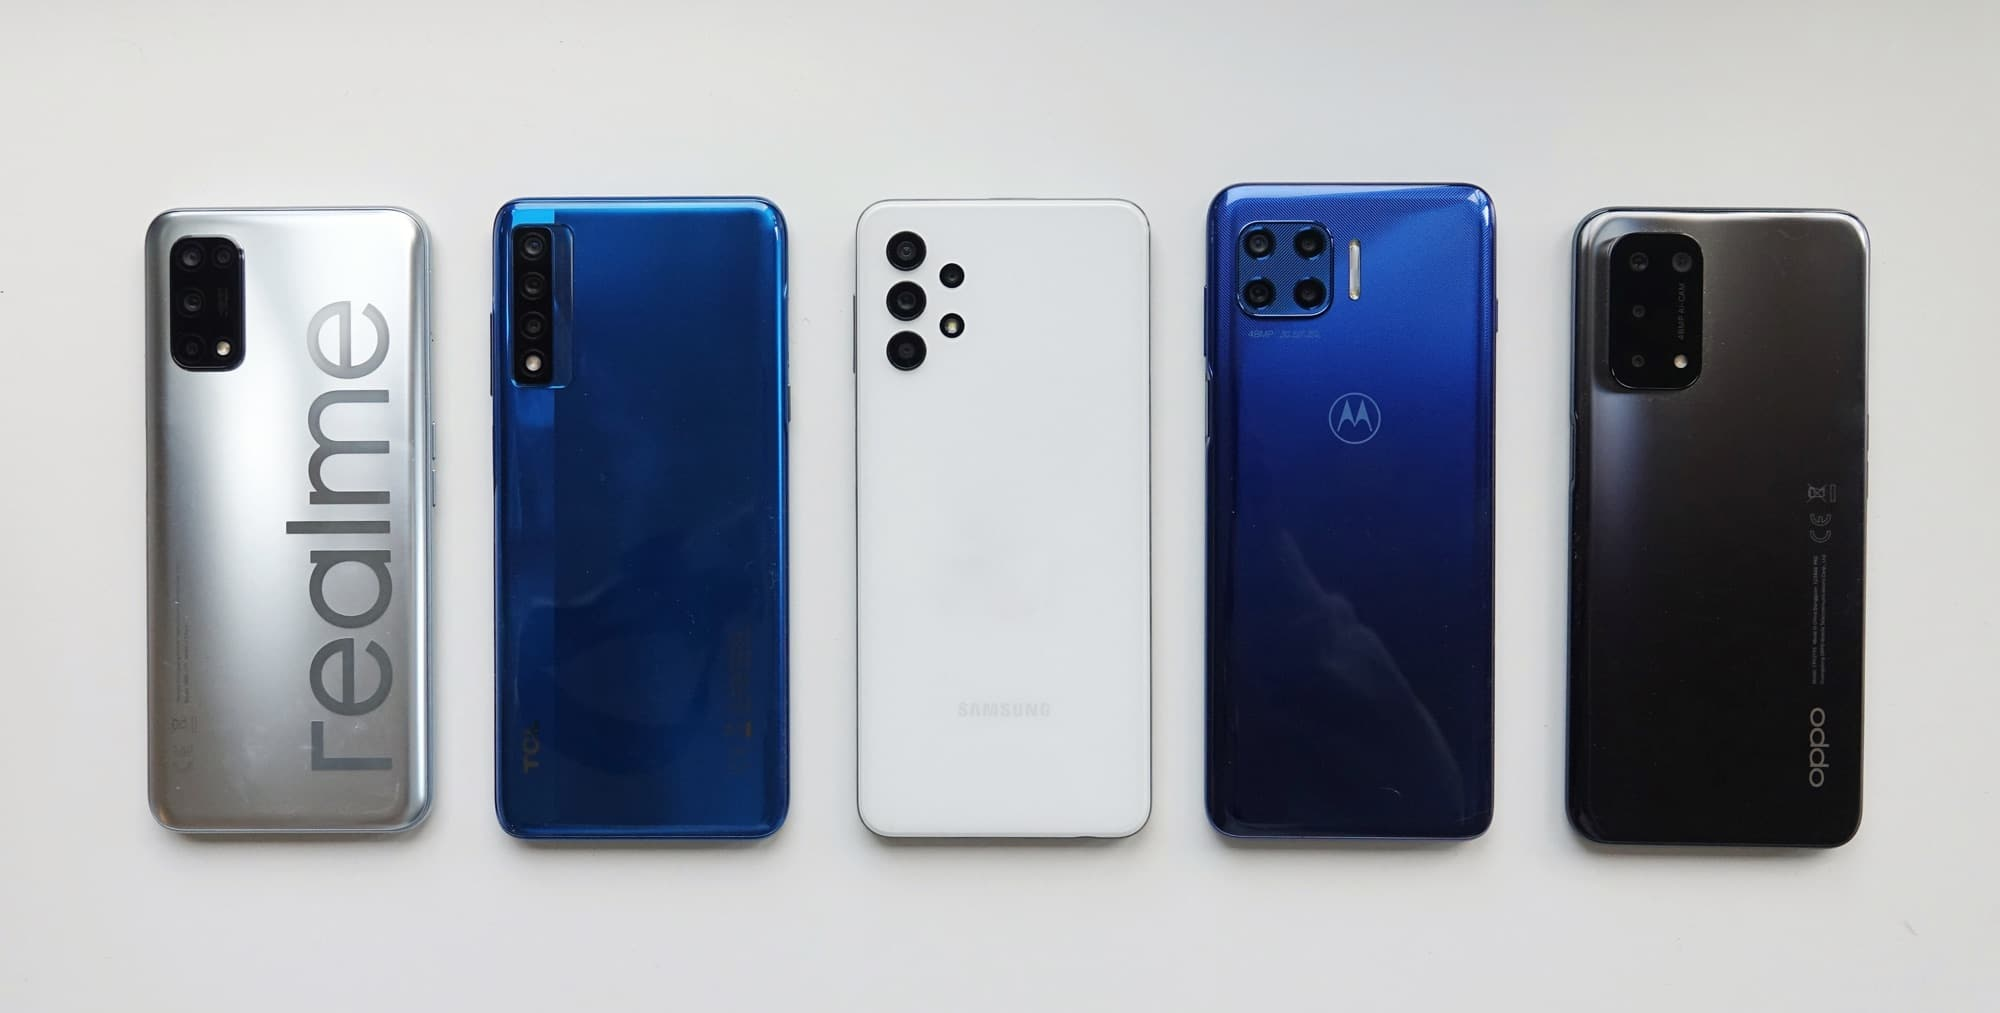 From left to right: Realme 7 5G, TCL 20 5G, Samsung Galaxy A32 5G, Motorola G 5G Plus, Oppo A54 5G.